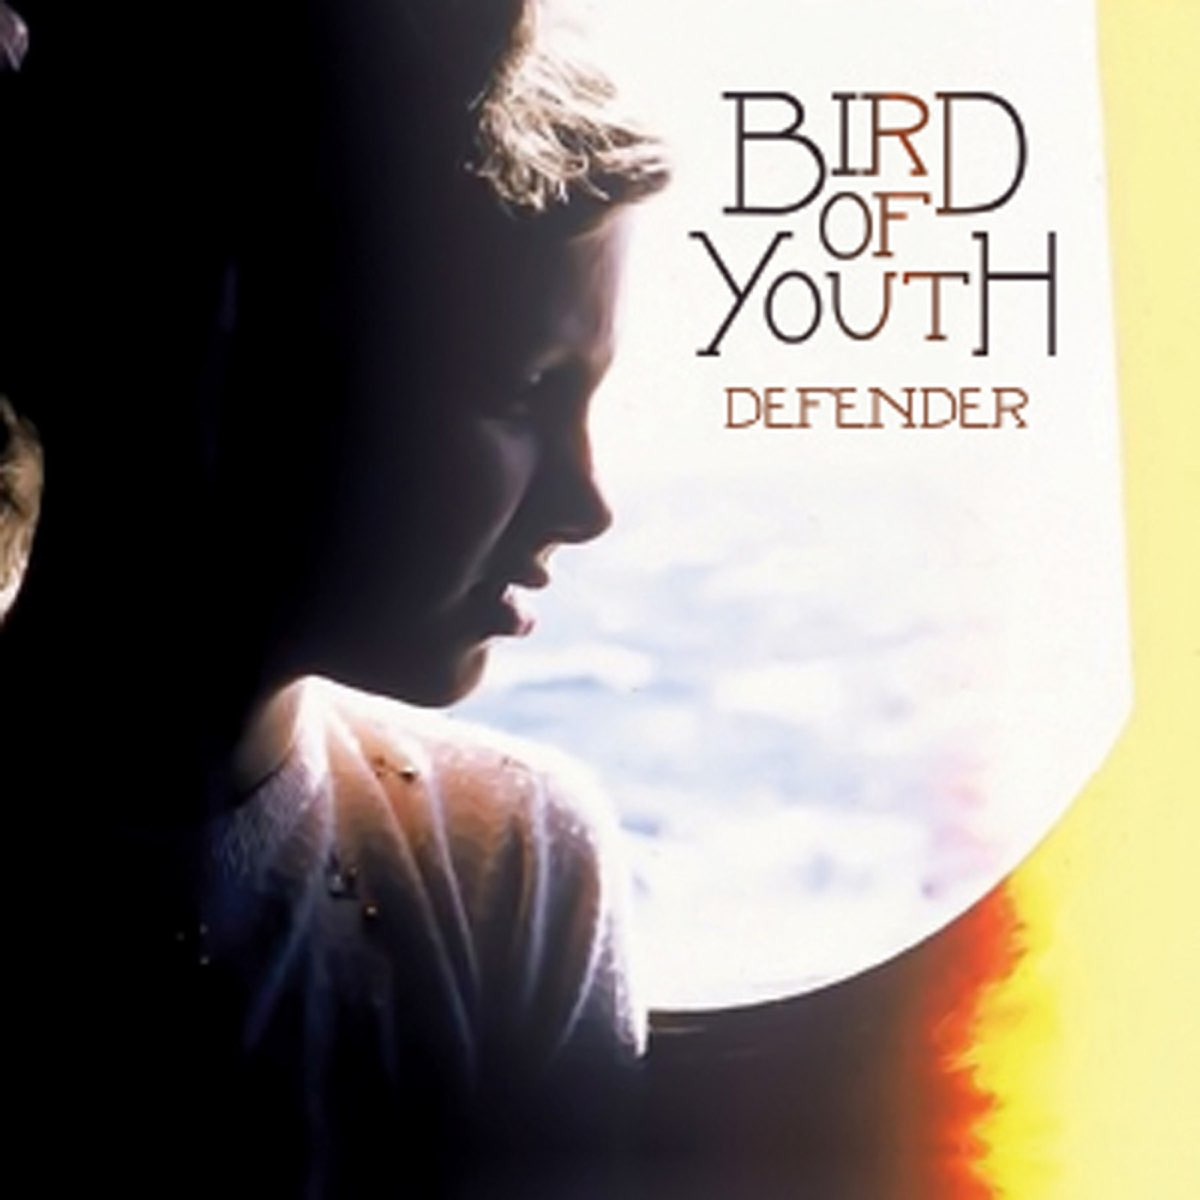 Bird of Youth, Defender